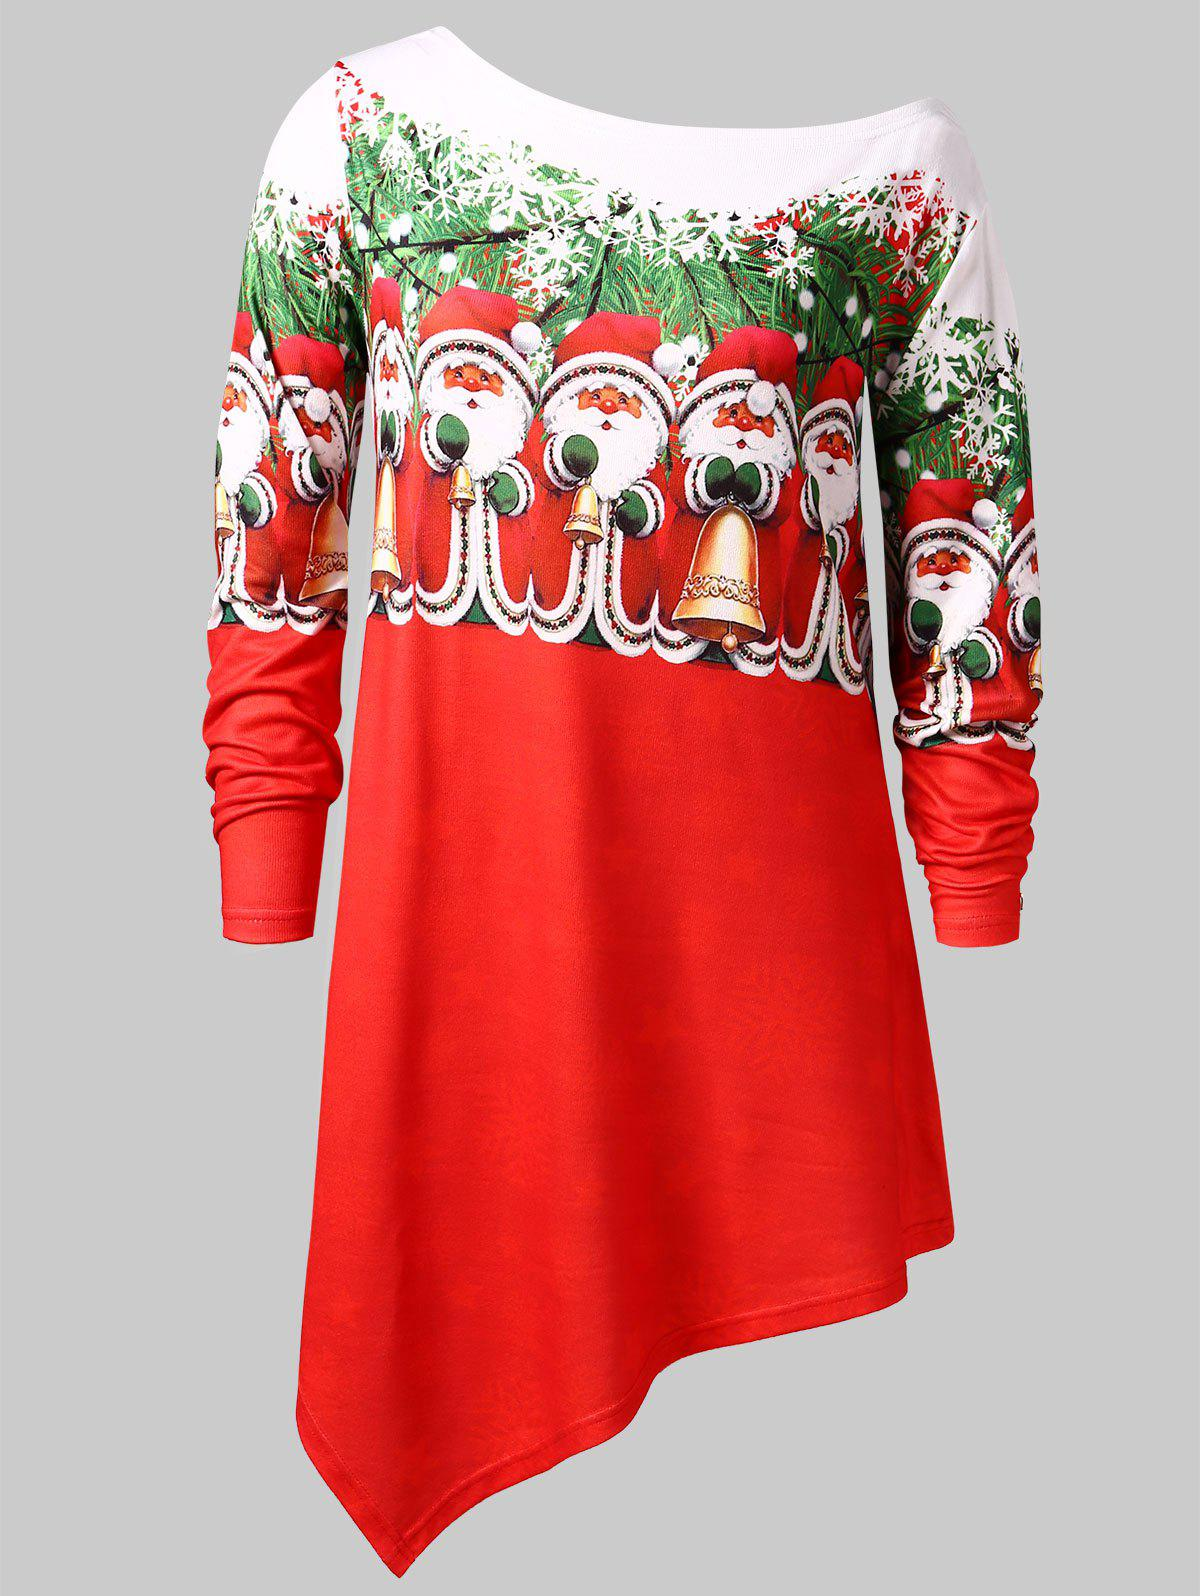 c48cd1cbf 38% OFF] Plus Size Santa Claus Print Asymmetric Christmas T-shirt ...